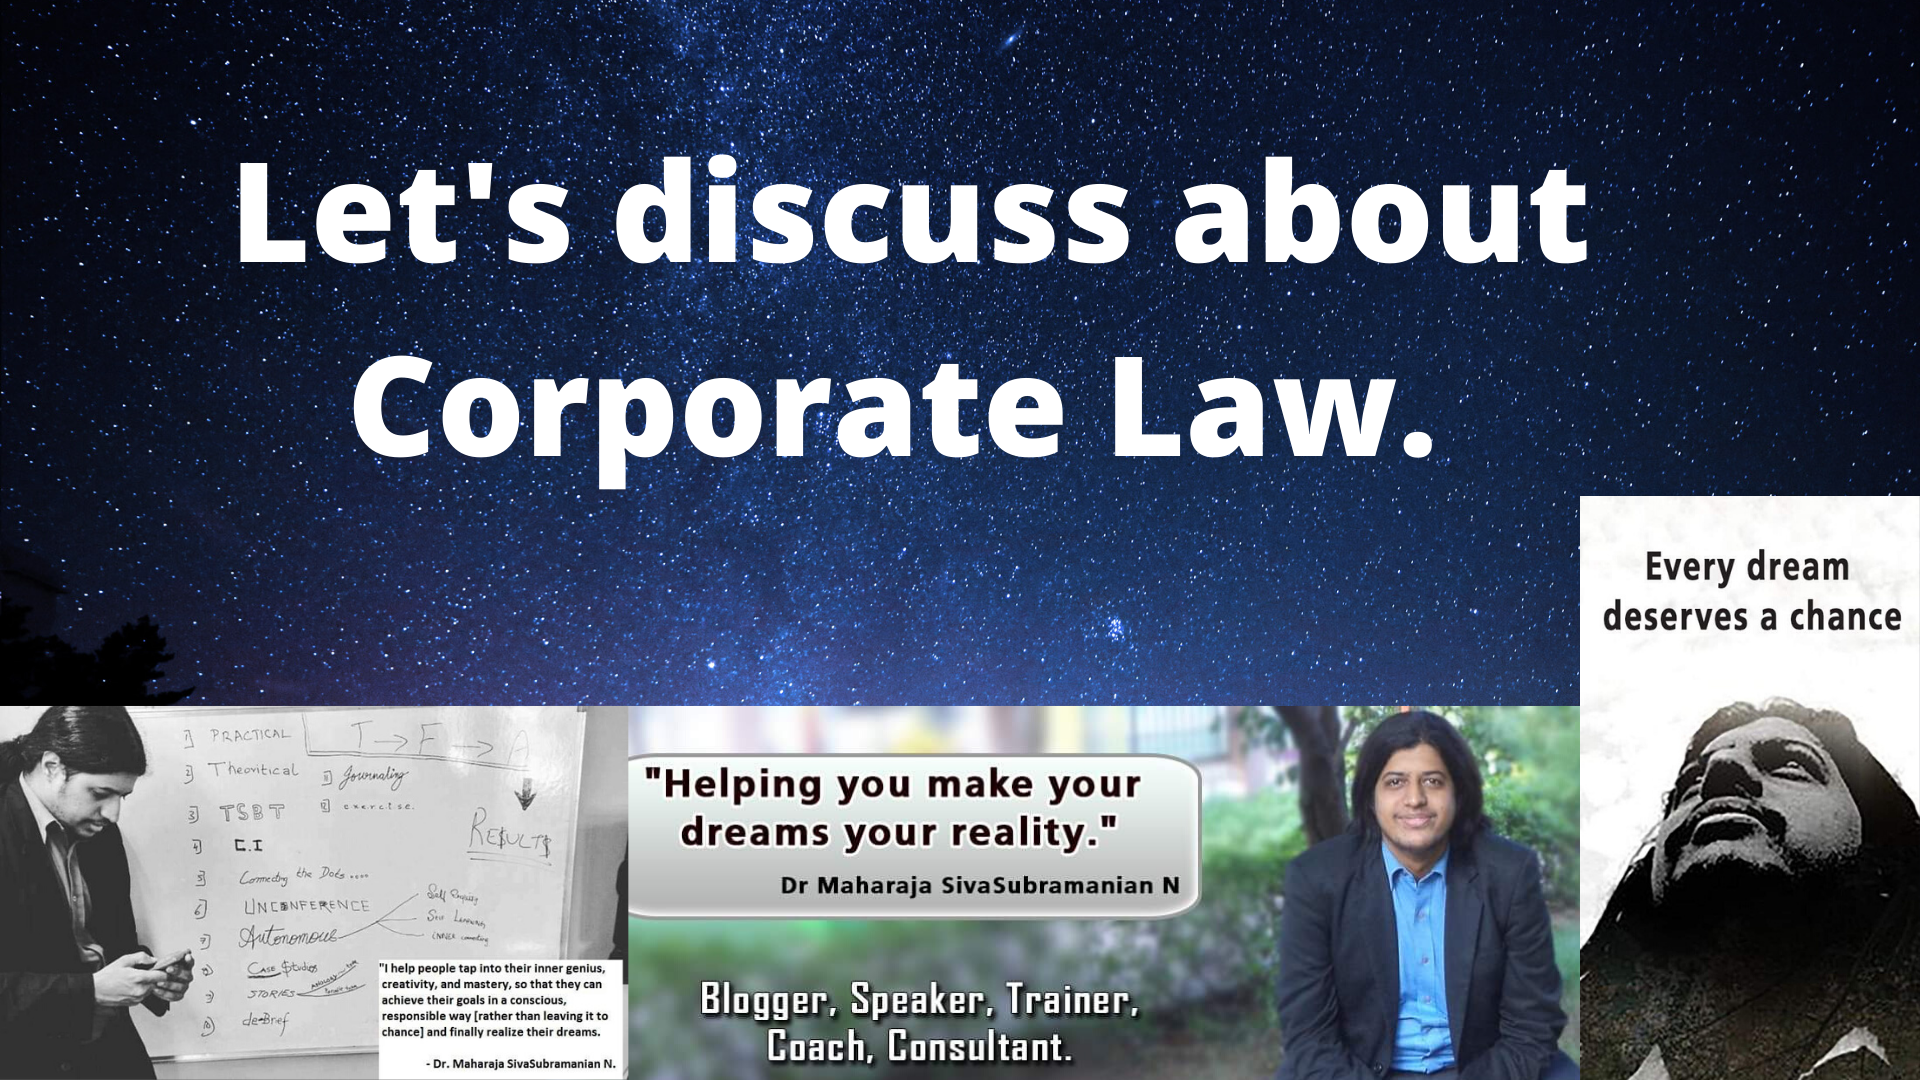 Let's discuss about Corporate Law.